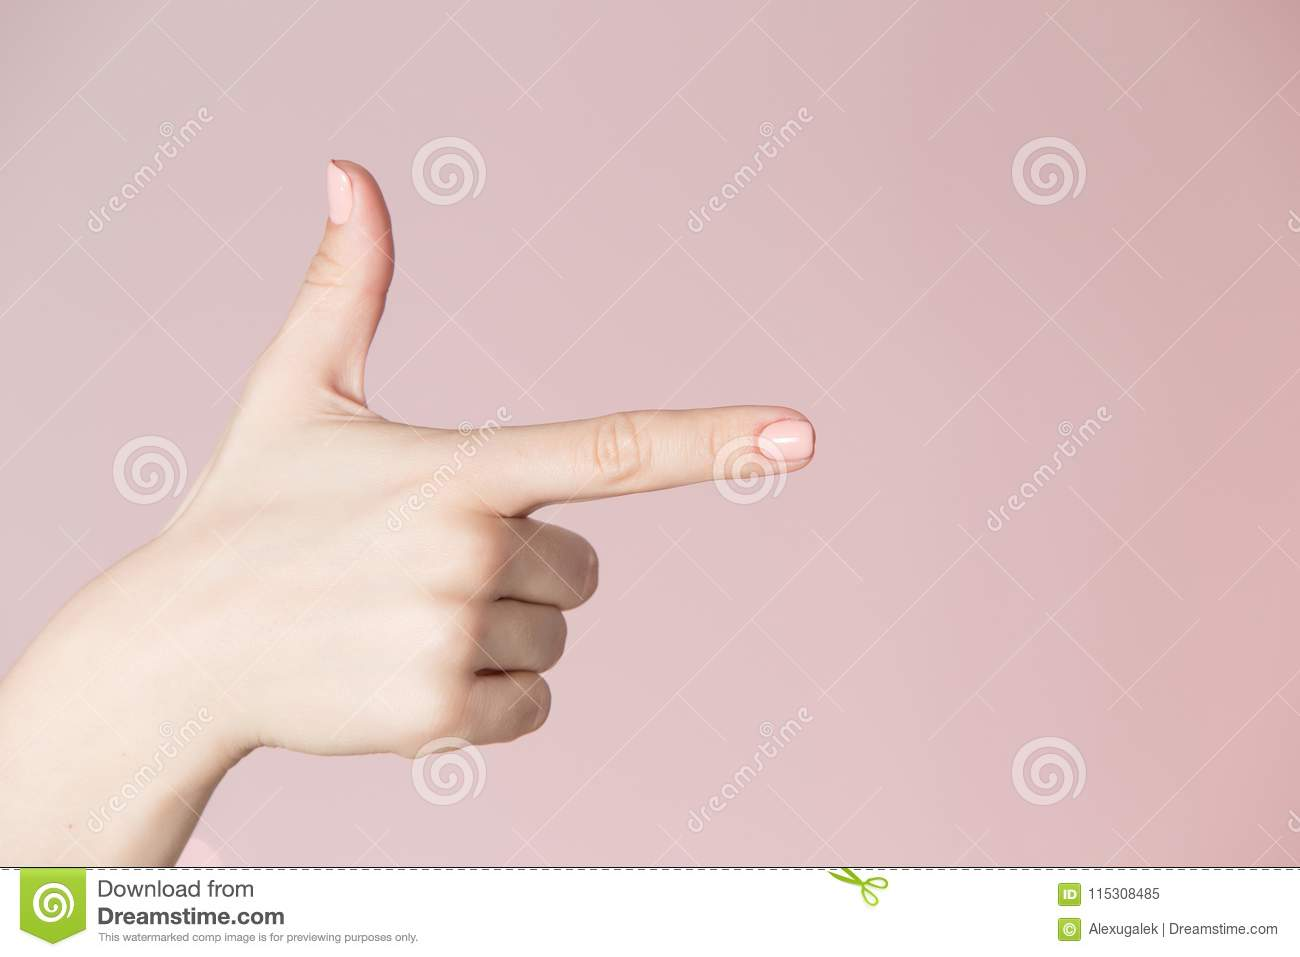 Beauty salon location theme. Woman hand with pink manicure showing gun sign